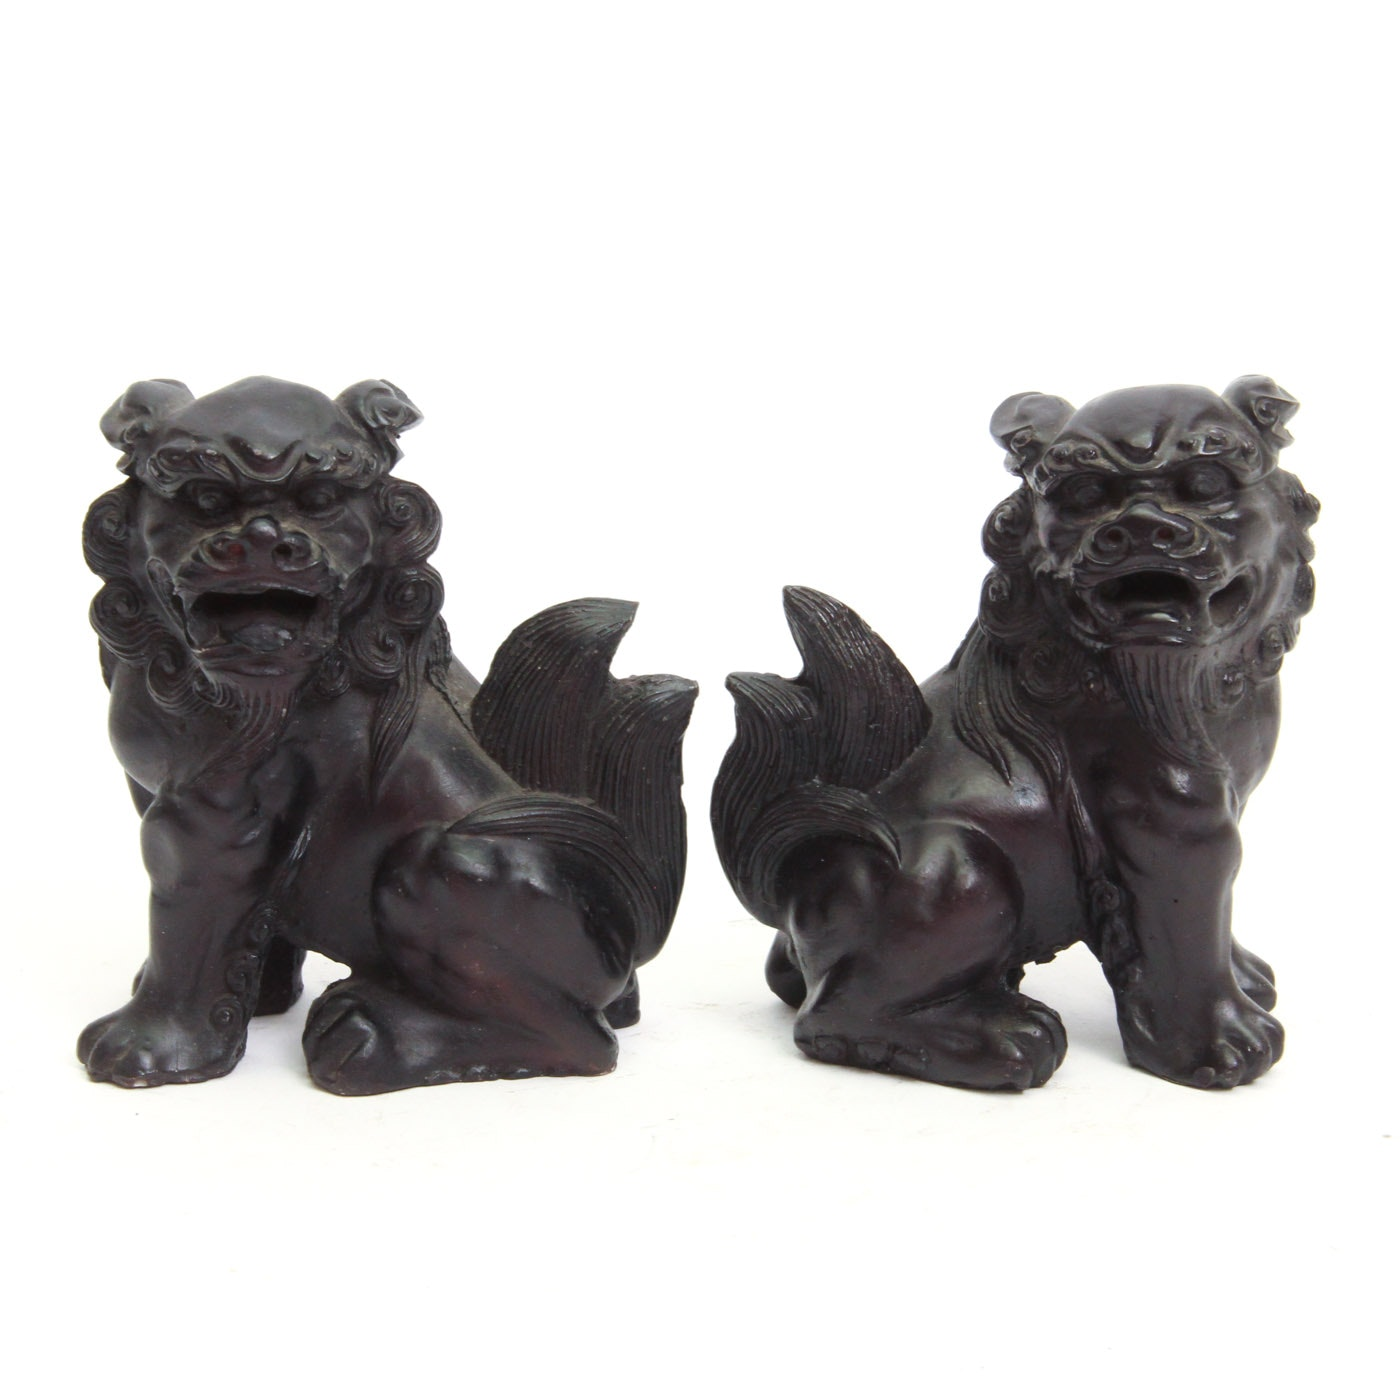 Pair of Carved Resin Chinese Guardian Lion Bookends